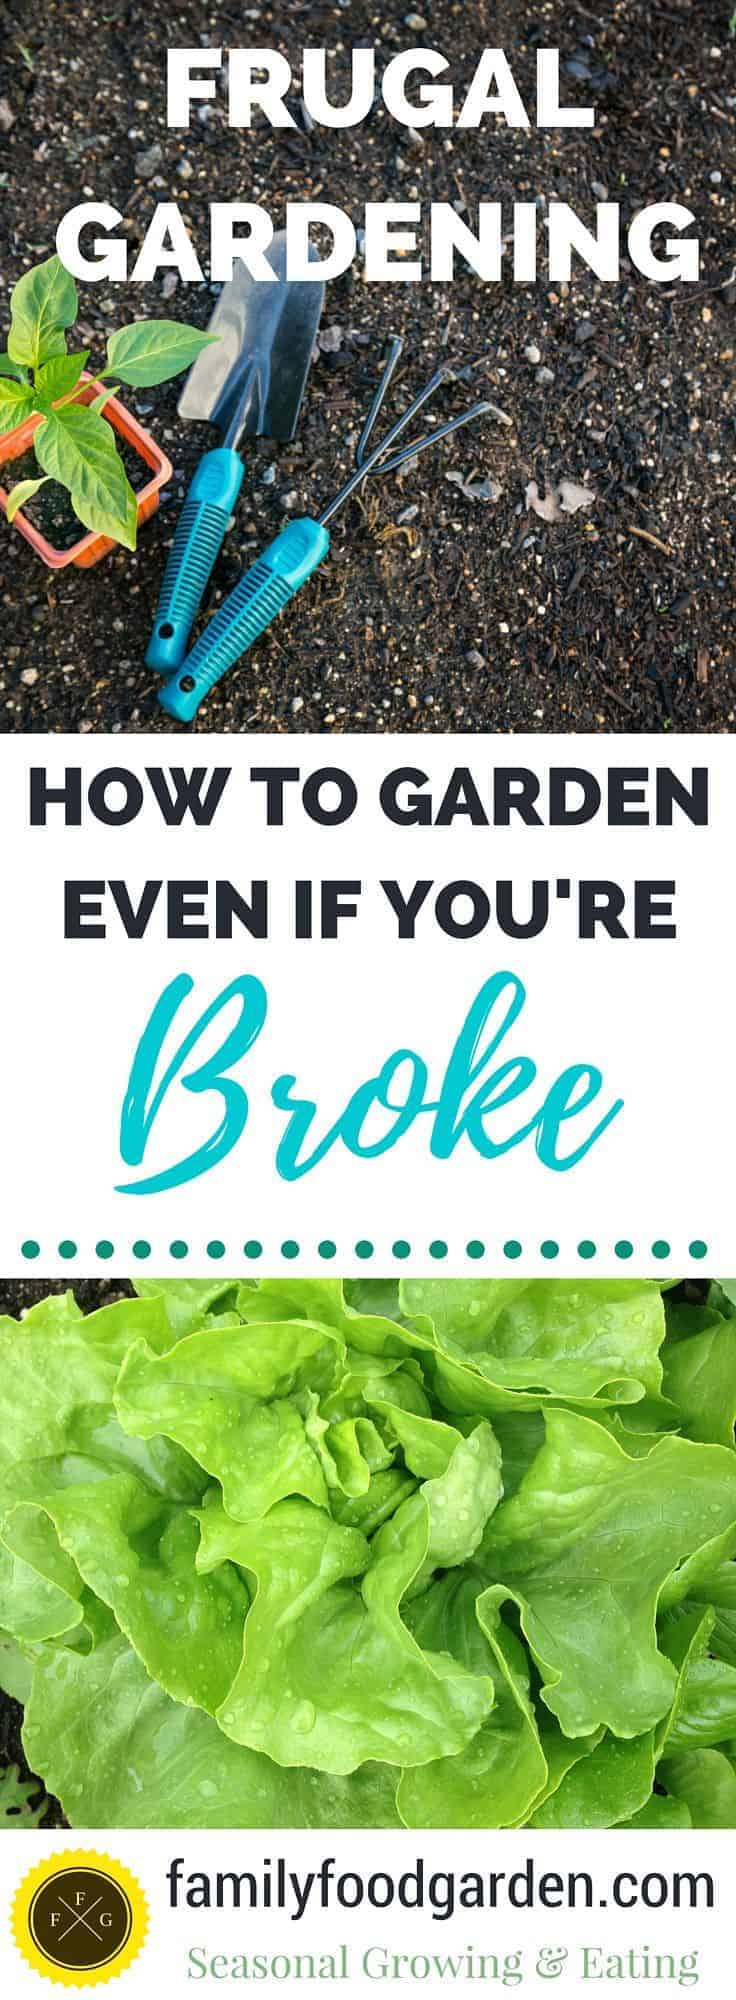 How to Garden even if you're broke